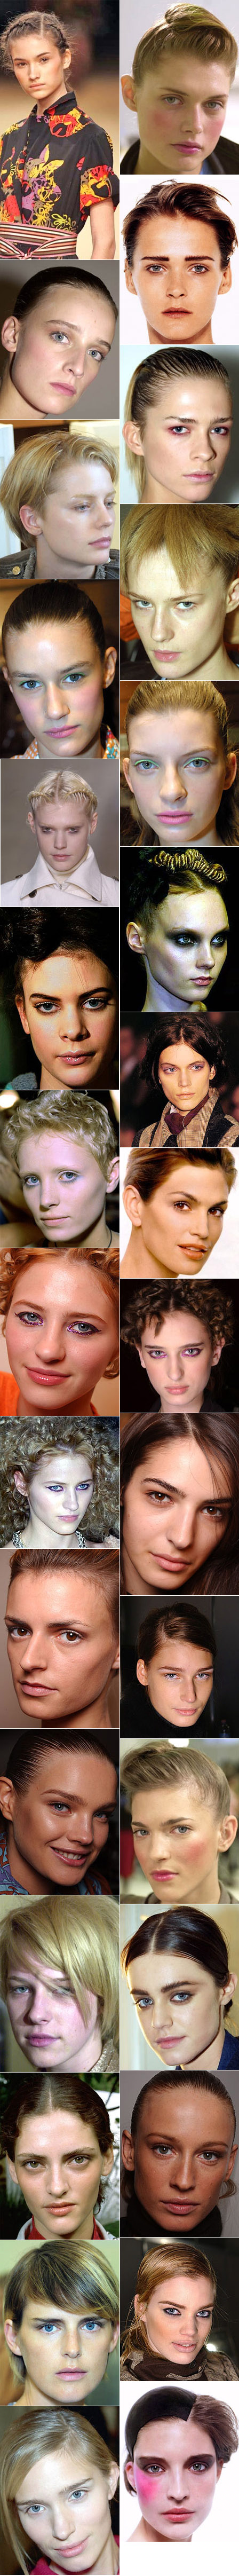 Fashion models with the faces of adolescent boys; Carmen Cass, Cindy Crawford, Emina Cunmulaj, Jacquetta Wheeler, Natalia Vodianova, Eugenia Volodina, etc.